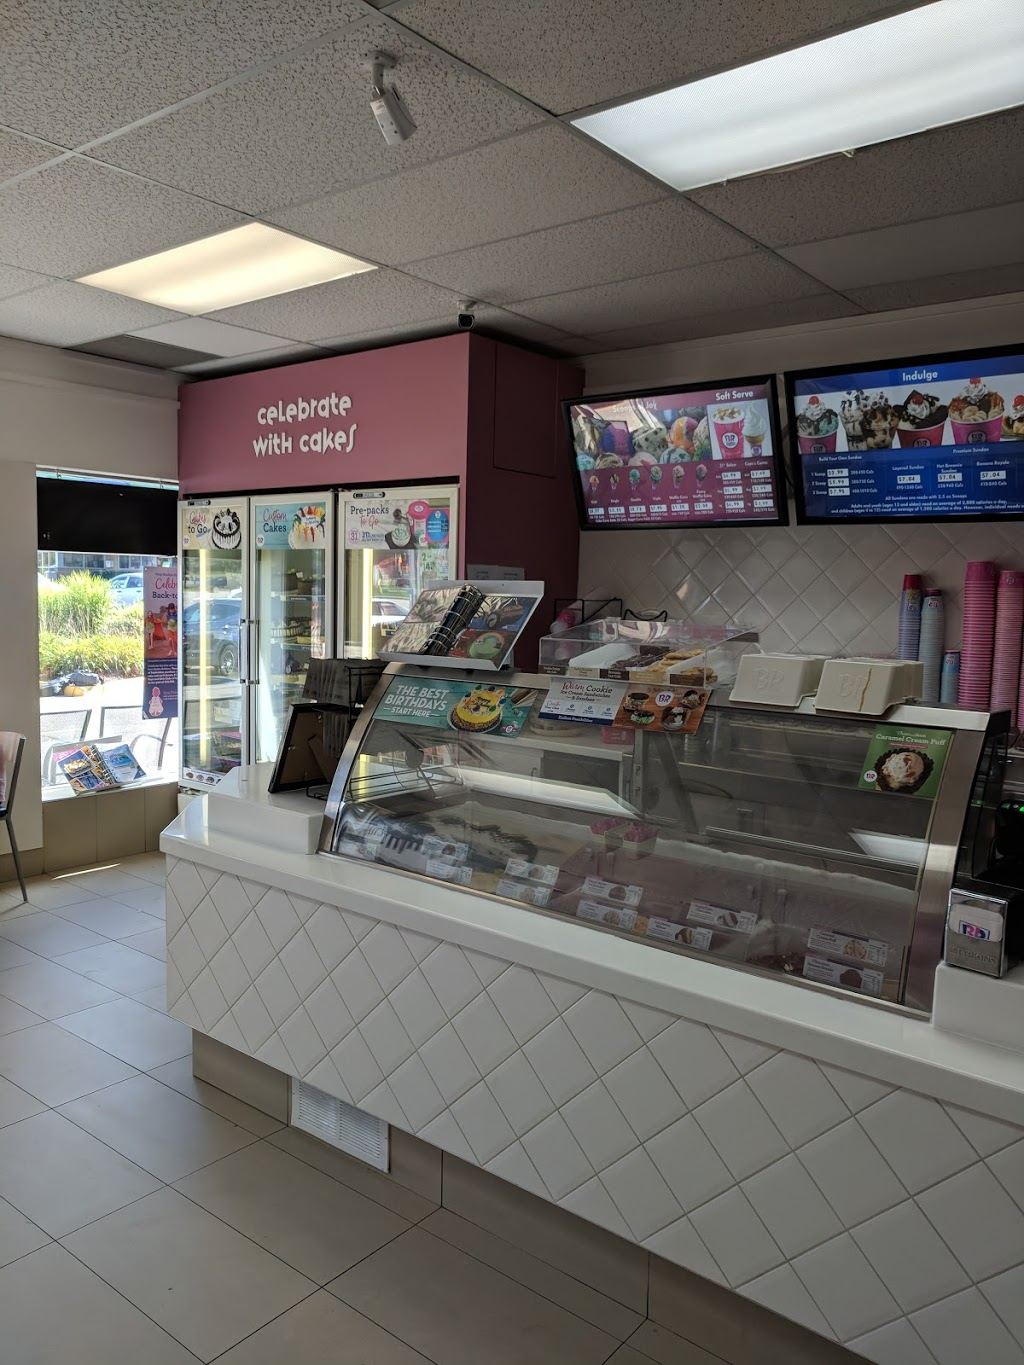 Baskin Robbins | cafe | 370 Highland Rd W, Kitchener, ON N2M 5J9, Canada | 5197425270 OR +1 519-742-5270